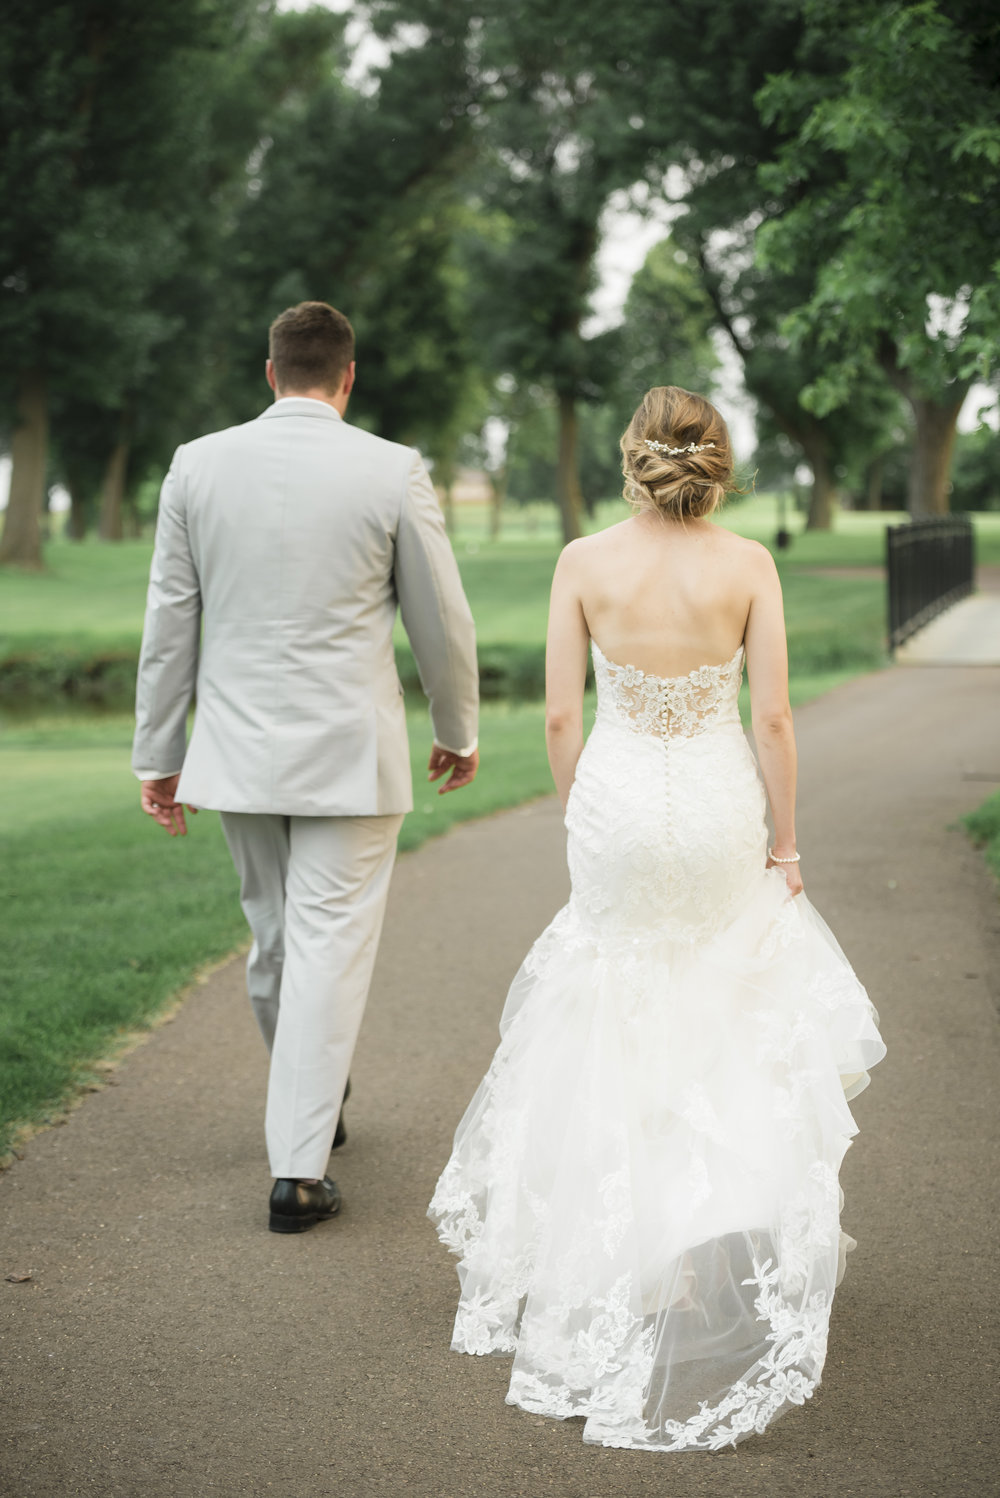 Sioux Falls Wedding Photographer | Bethany Melvin Photography